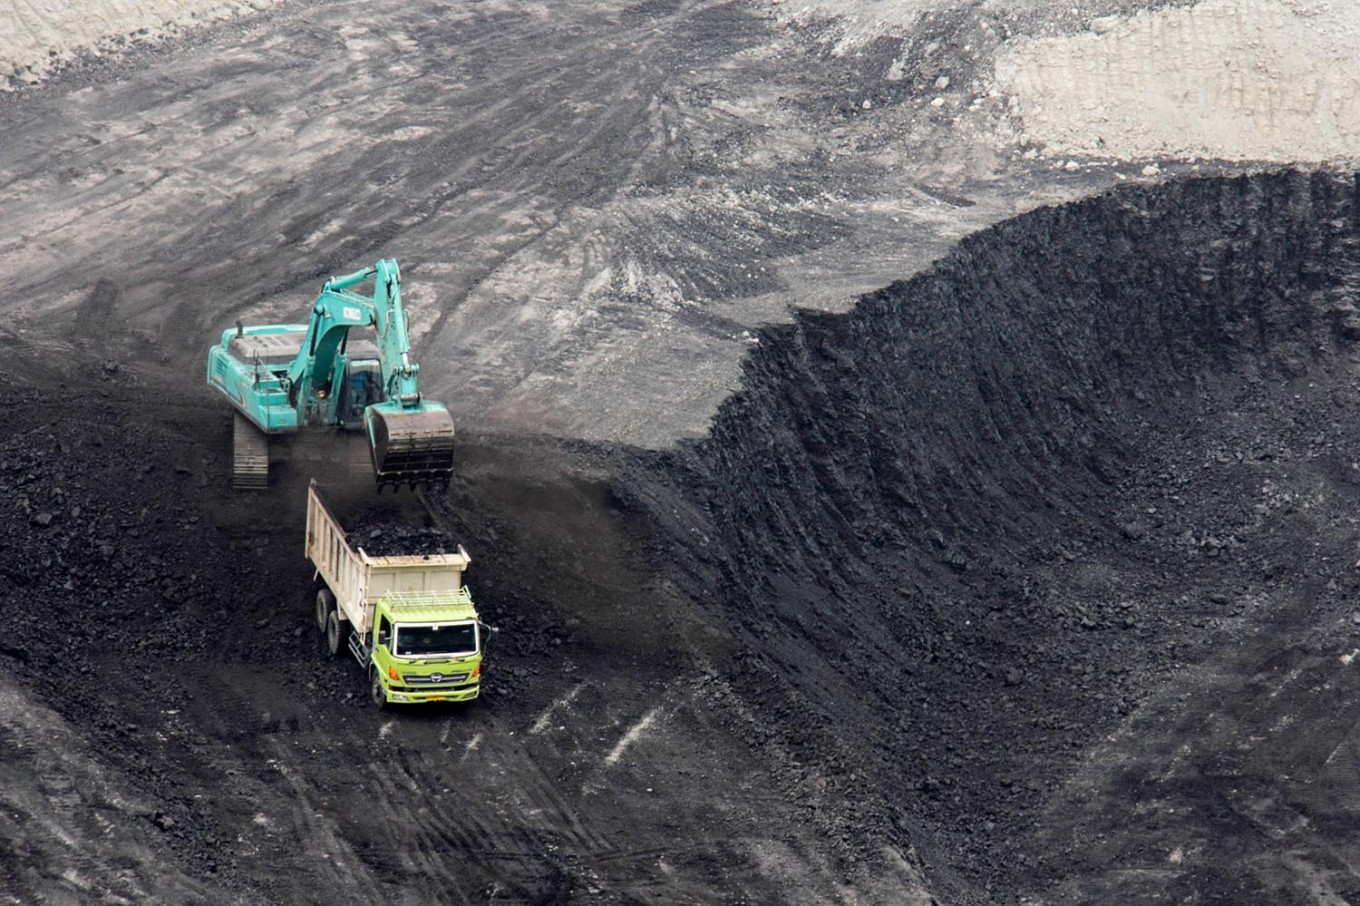 34 coal miners seek additional quotas